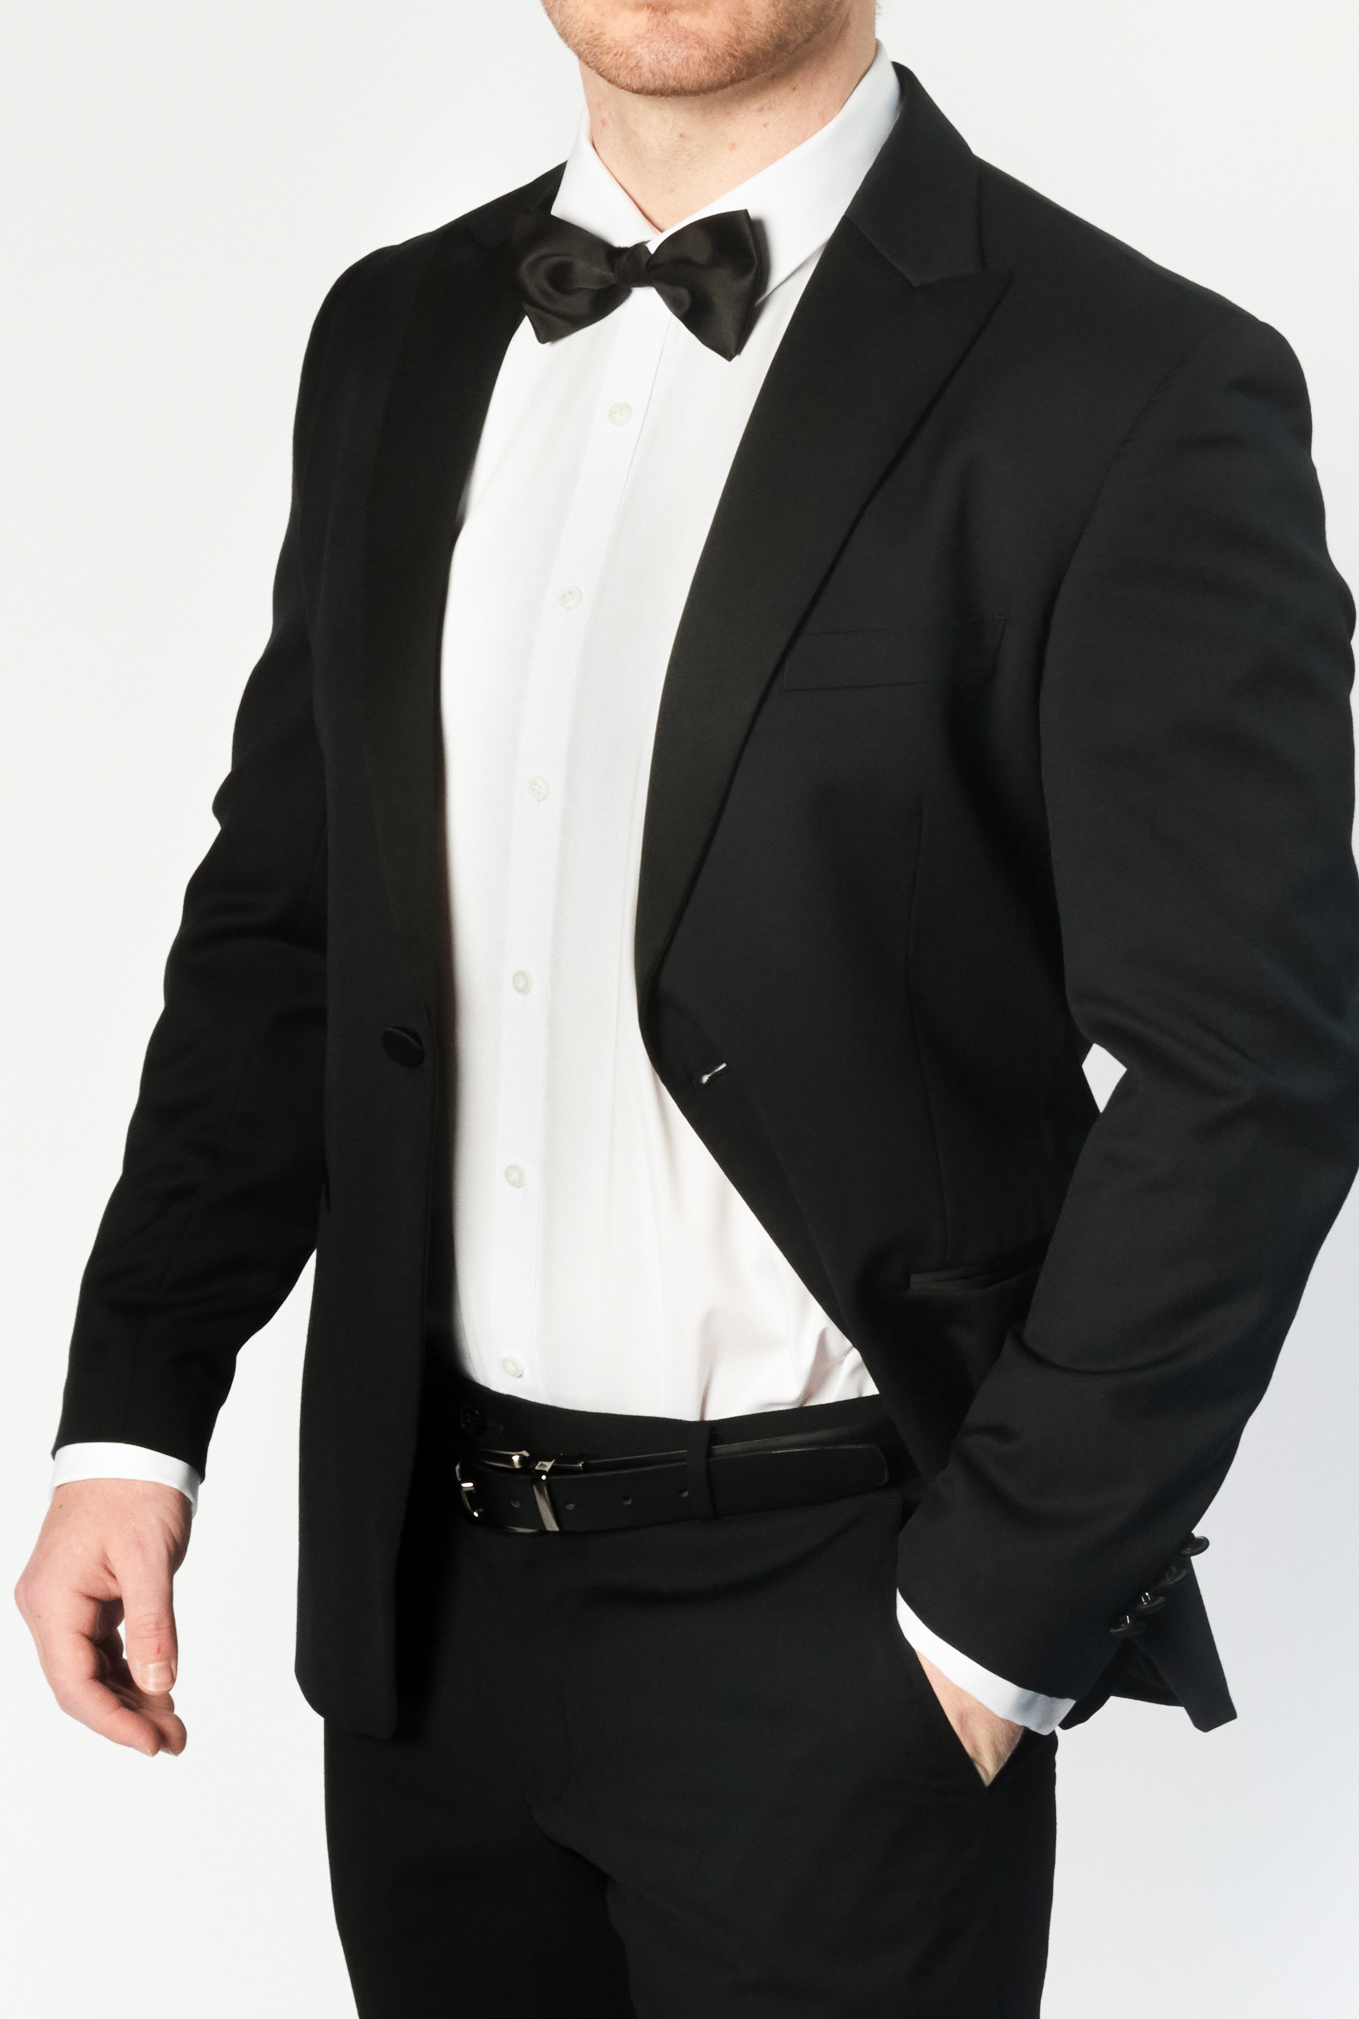 The Oxford tuxedo with close up of peak lapel